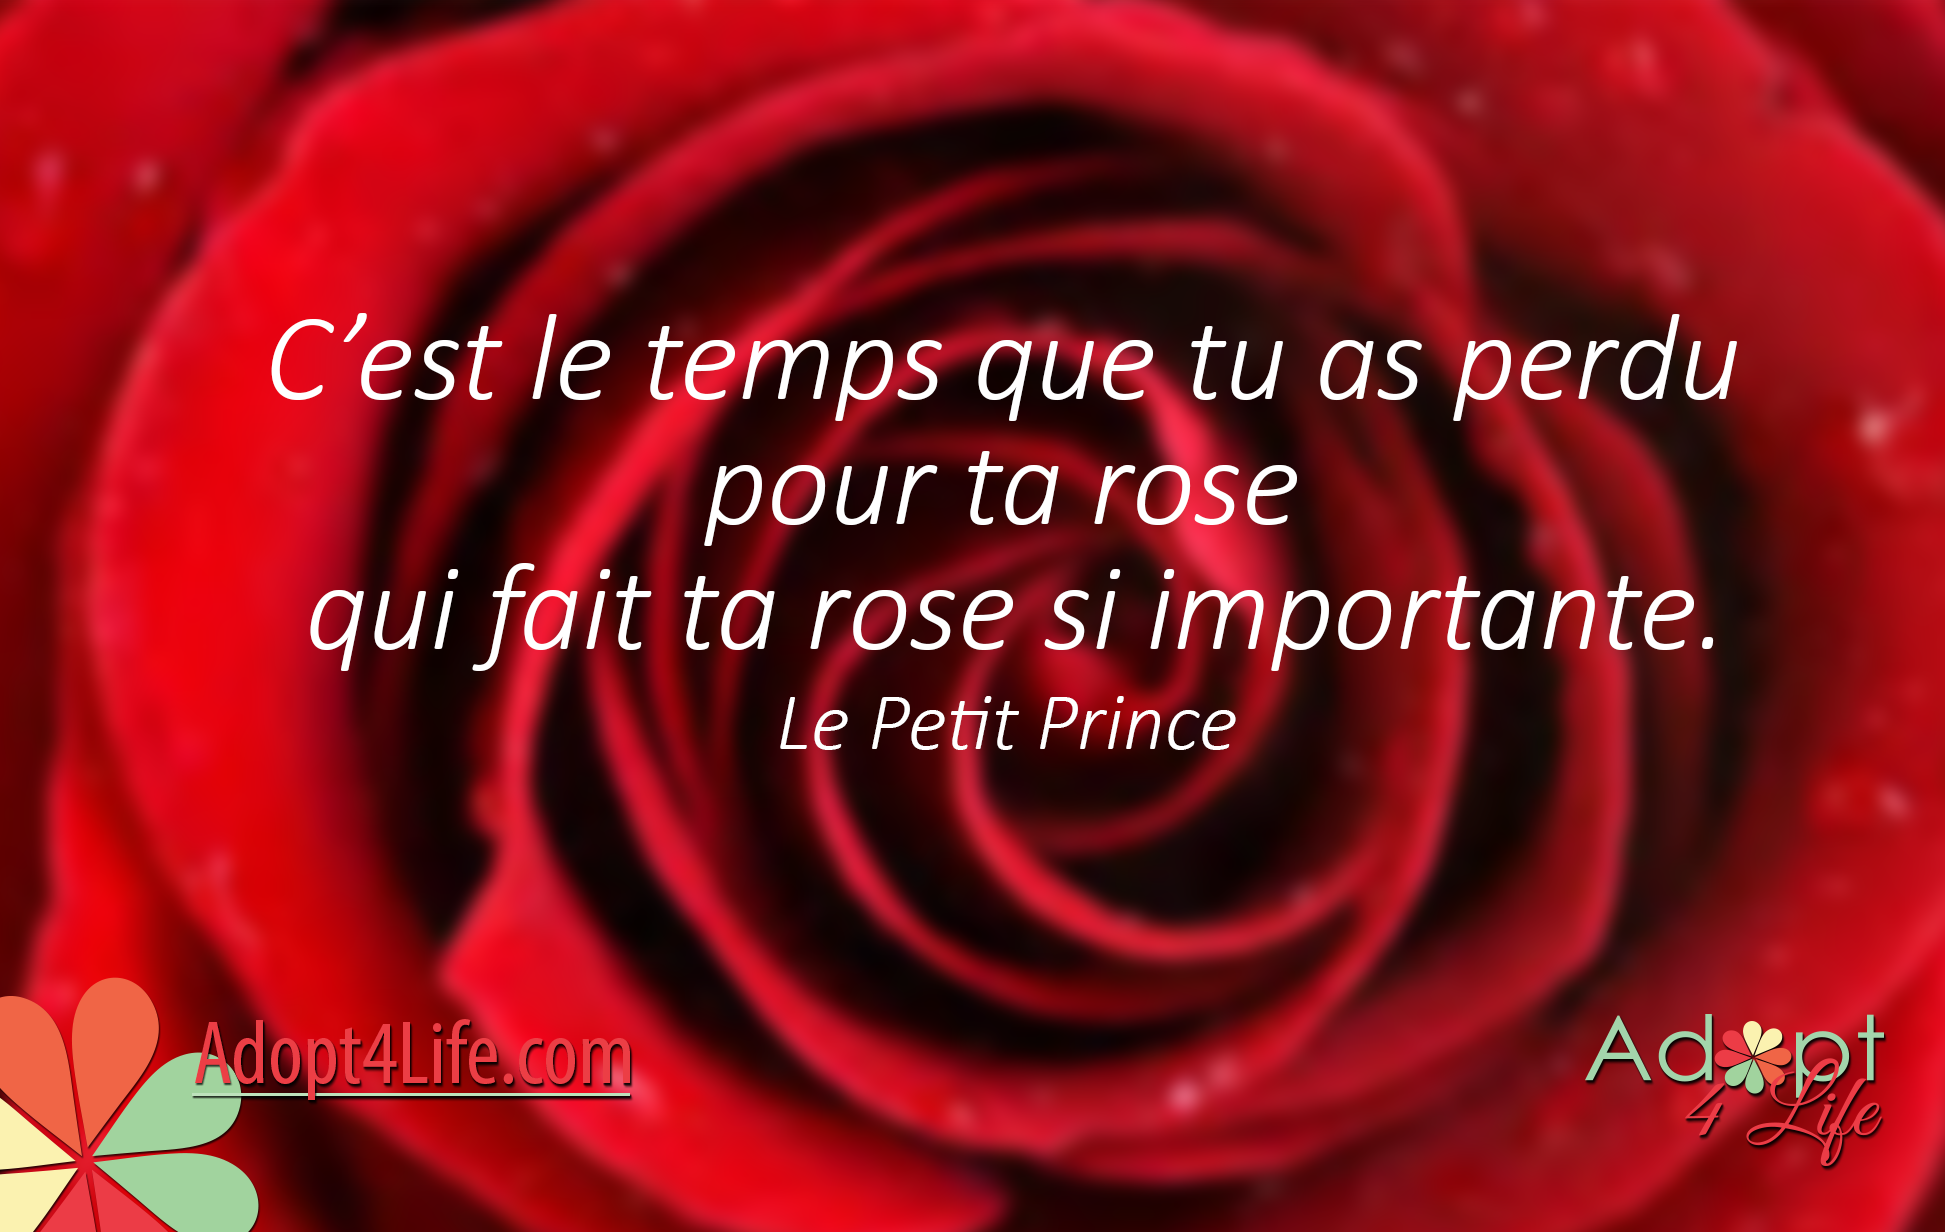 Facebook_AdoptionQuote_French_017_Dec2014_png.png